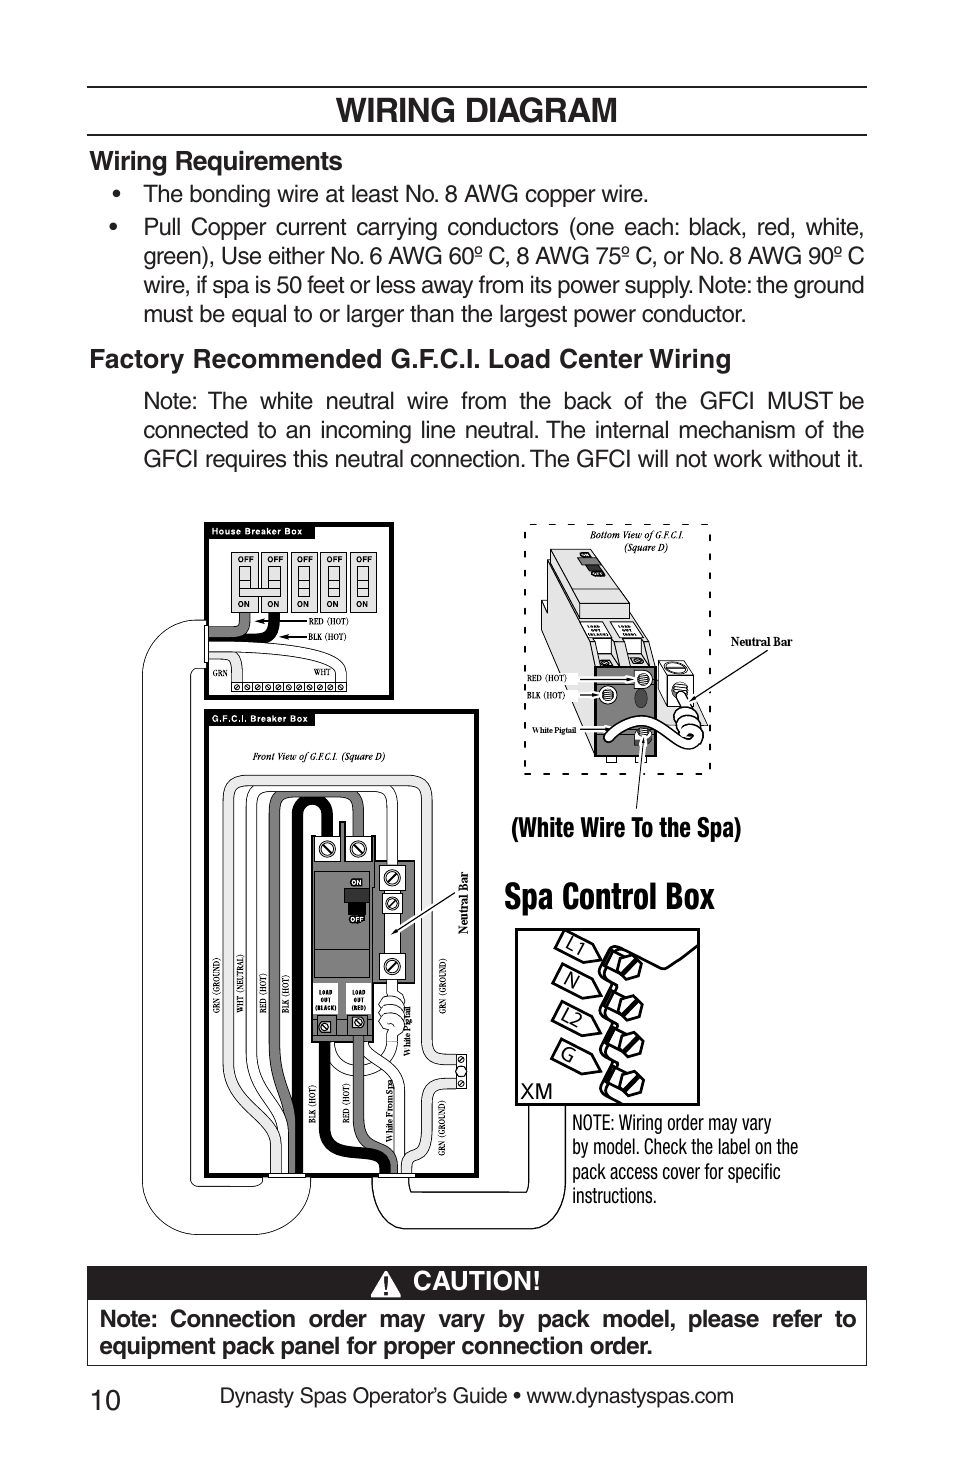 hight resolution of wiring diagram 7hite factory recommended g f c i load center dynasty spas wiring diagram